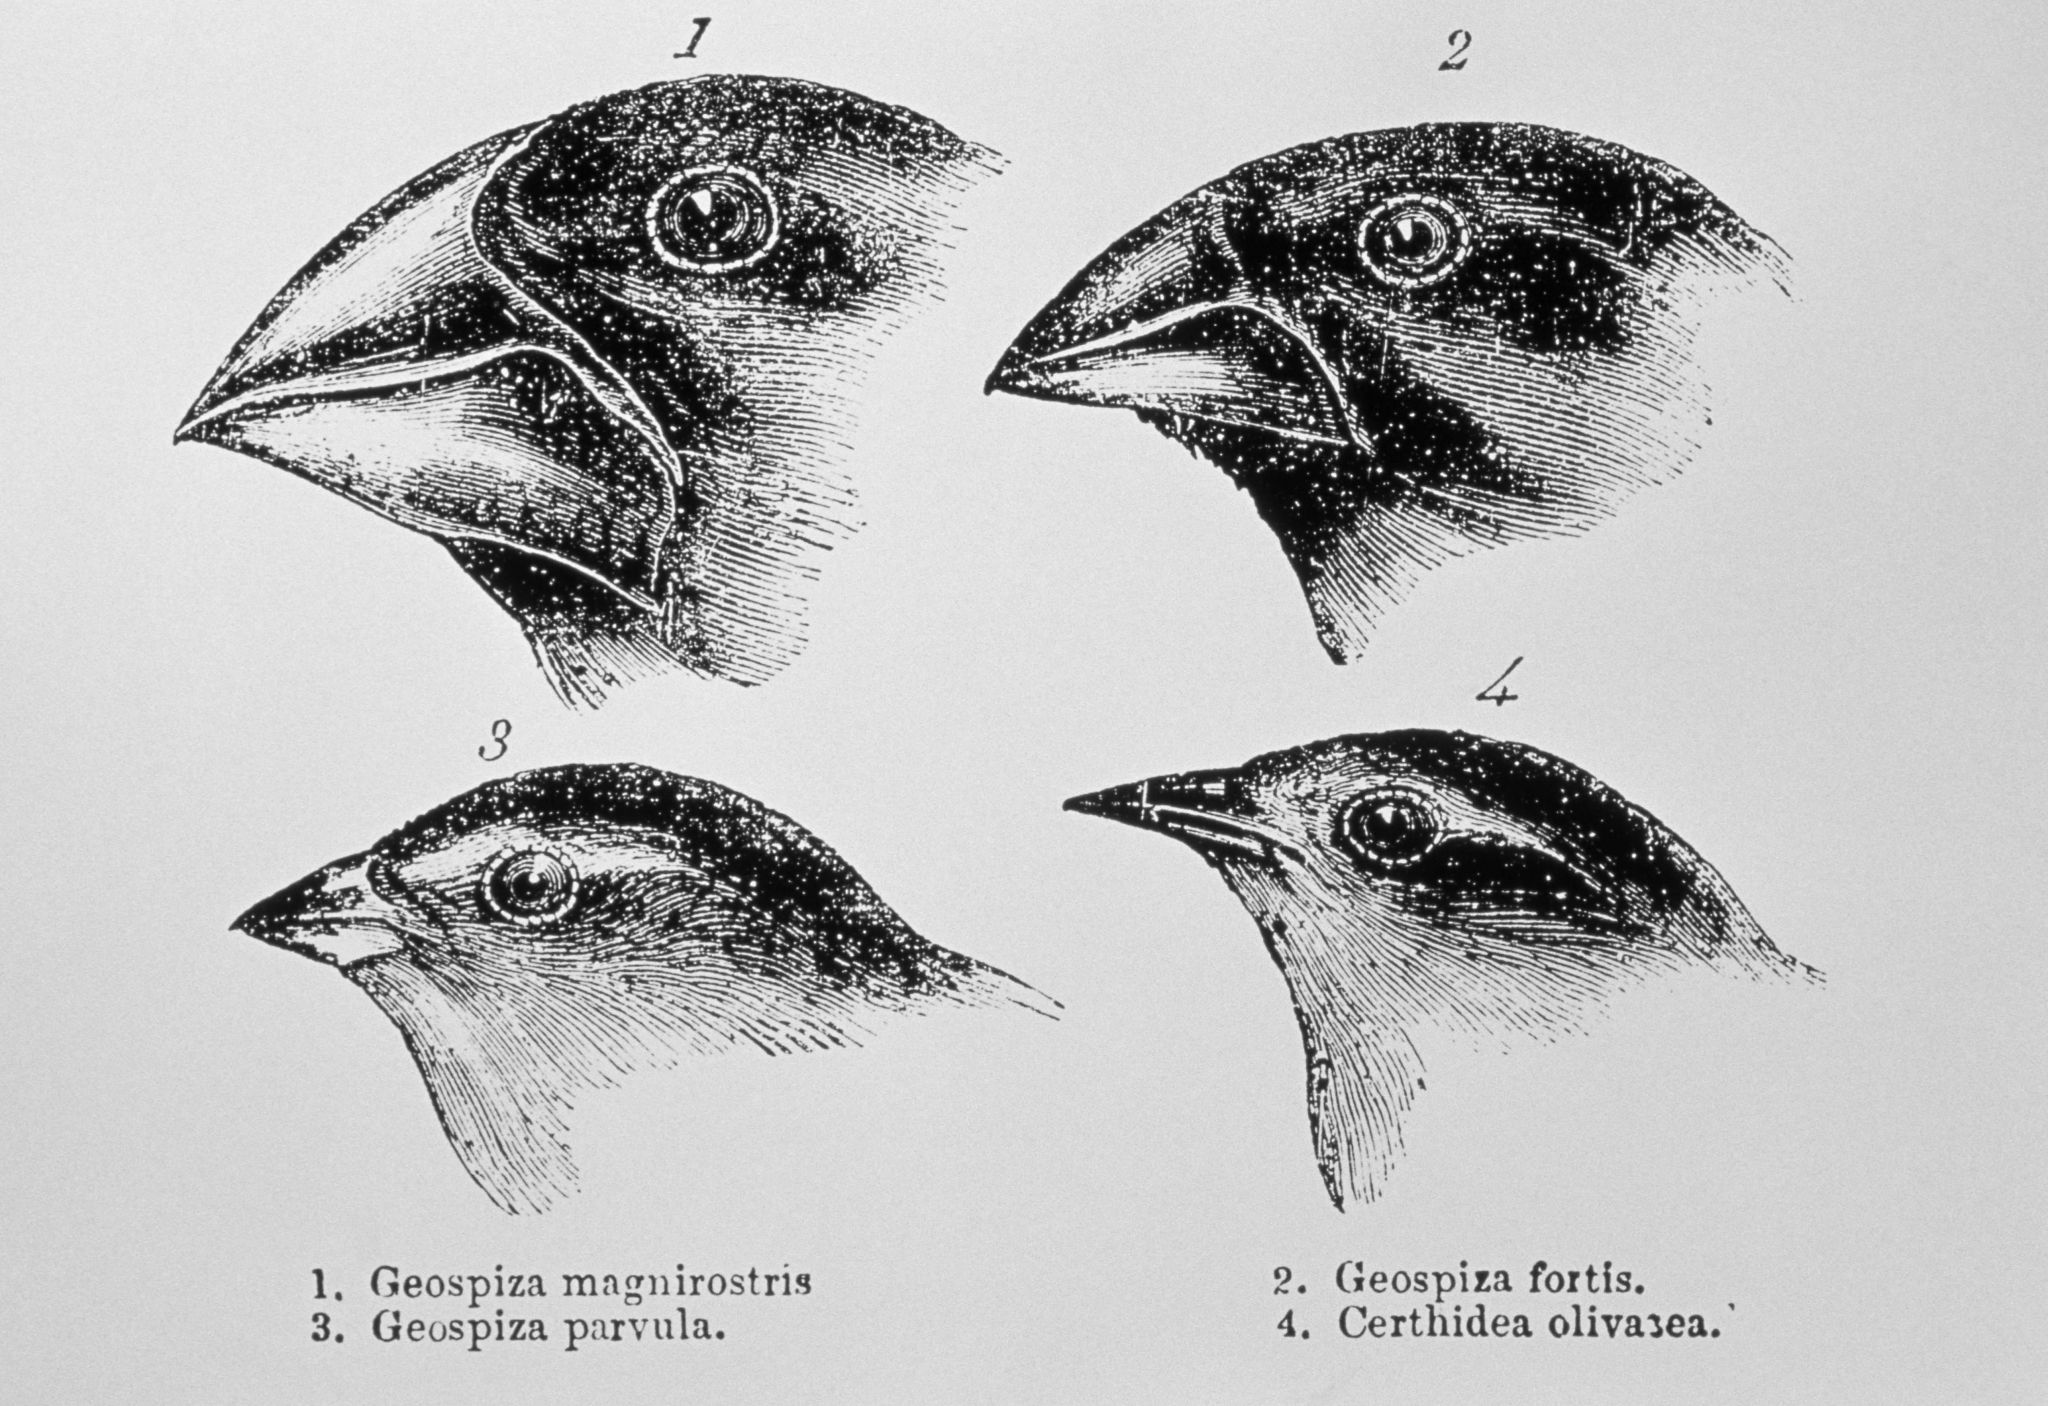 Evolution by Natural Selection Worksheet Also Charles Darwin S Finches and the theory Of Evolution